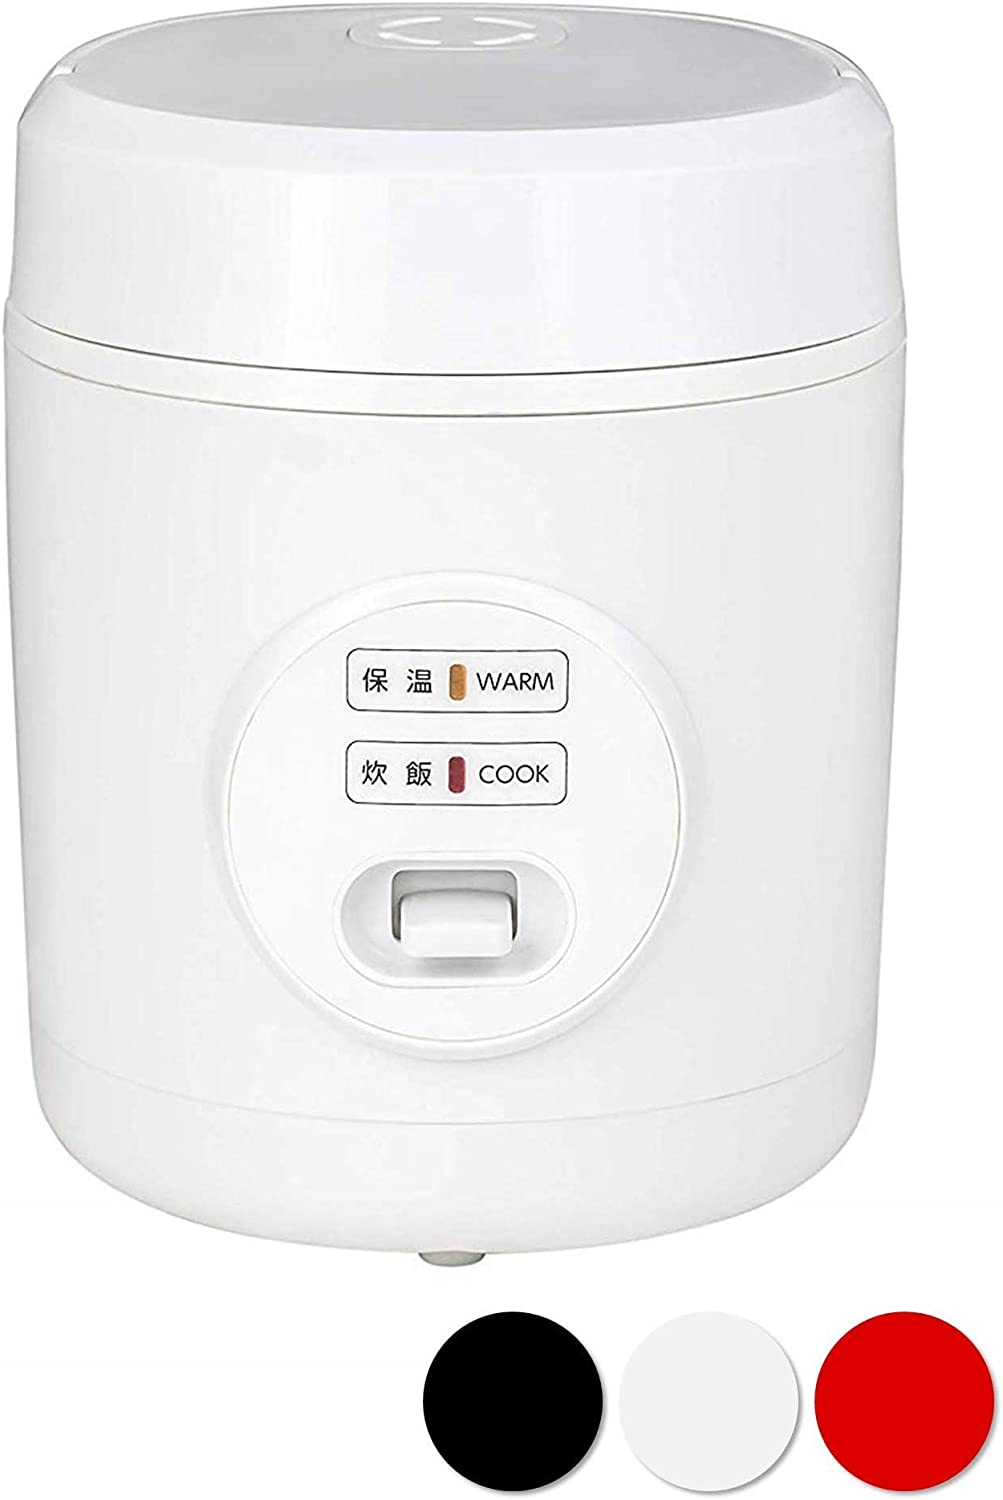 Yamazen Rice Cooker 0.5 to 1.5 Pair Small Mini Rice Cooker White YJE-M150 (W)